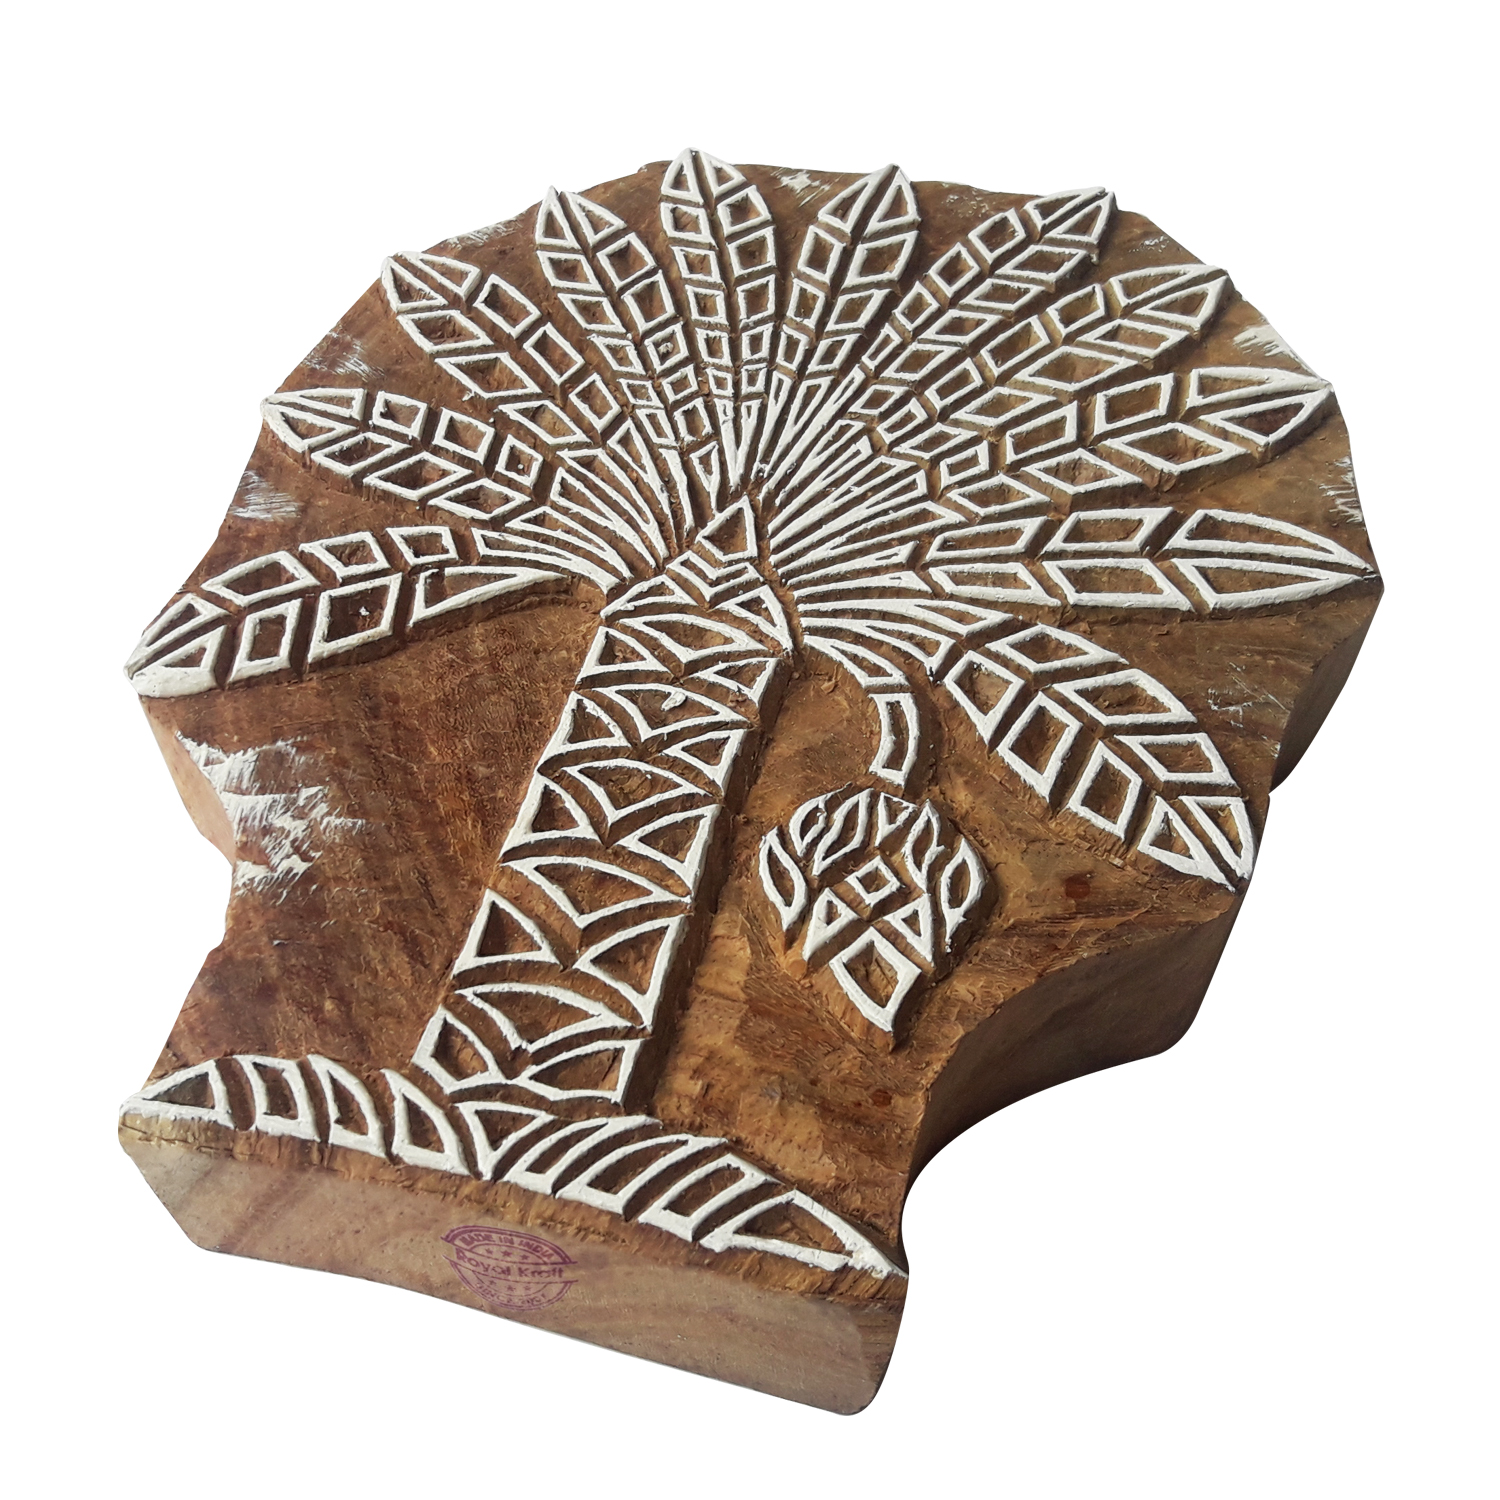 Large Tree Printing Blocks 6.2 inches